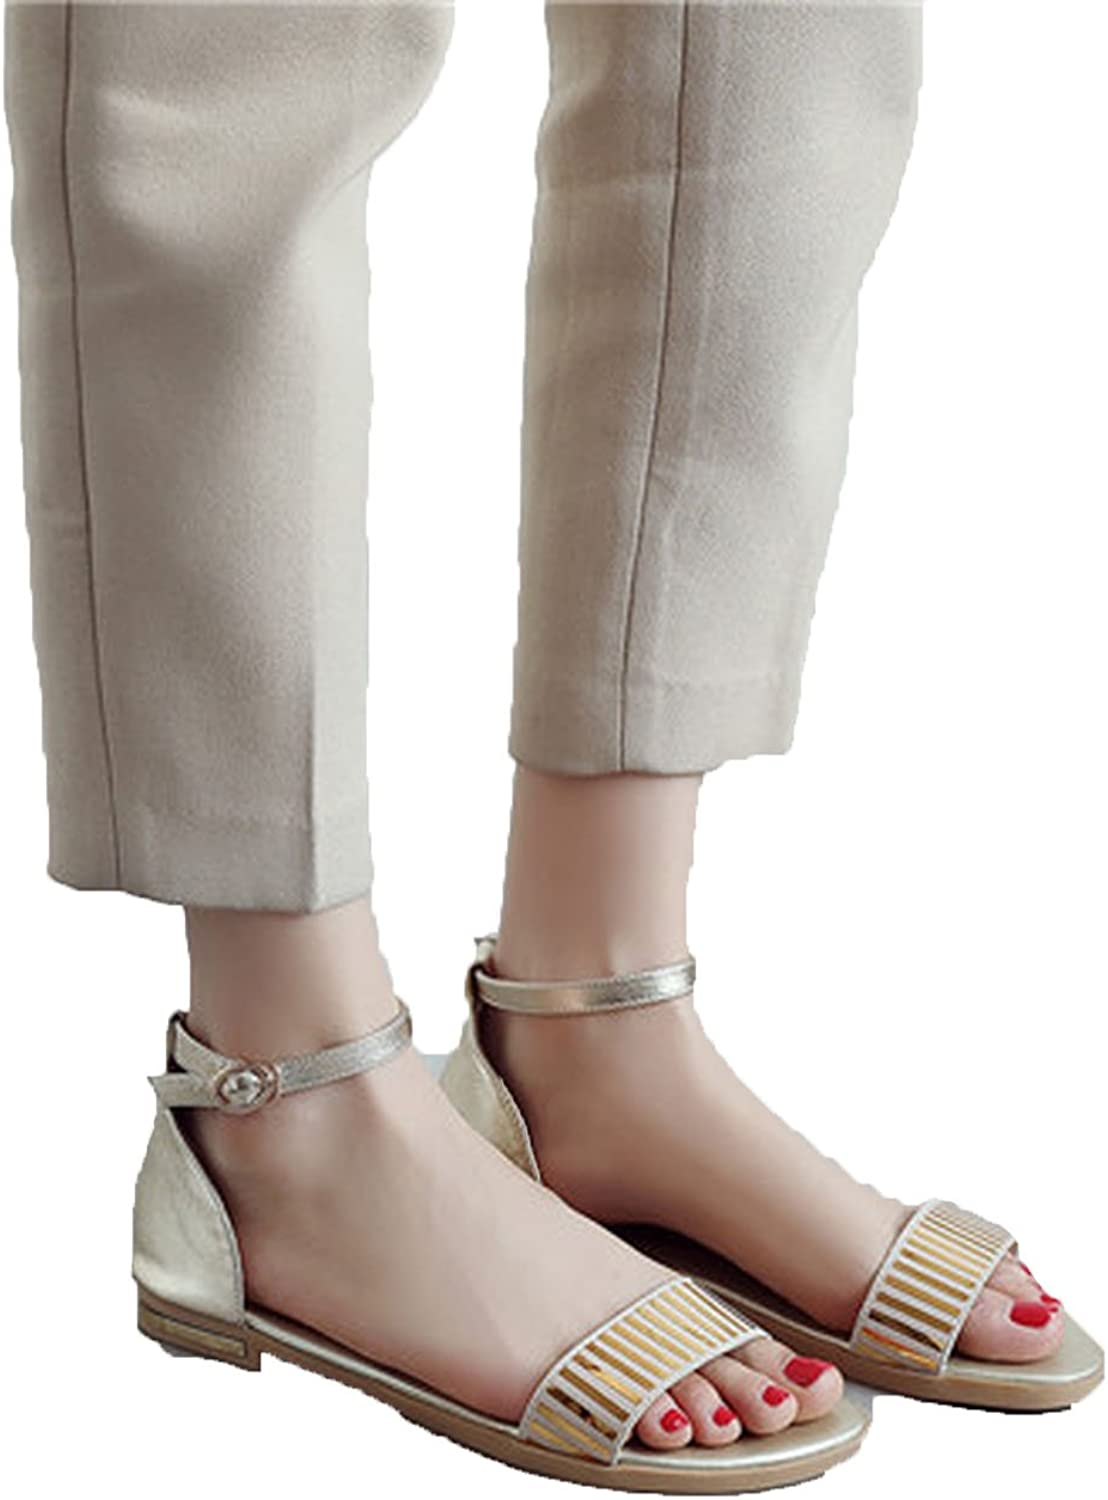 Running-sun Women Sandals Summer Genuine Leather Buckle Strap High Heel Pumps Woman shoes Plus Size,gold is Pu,9.5